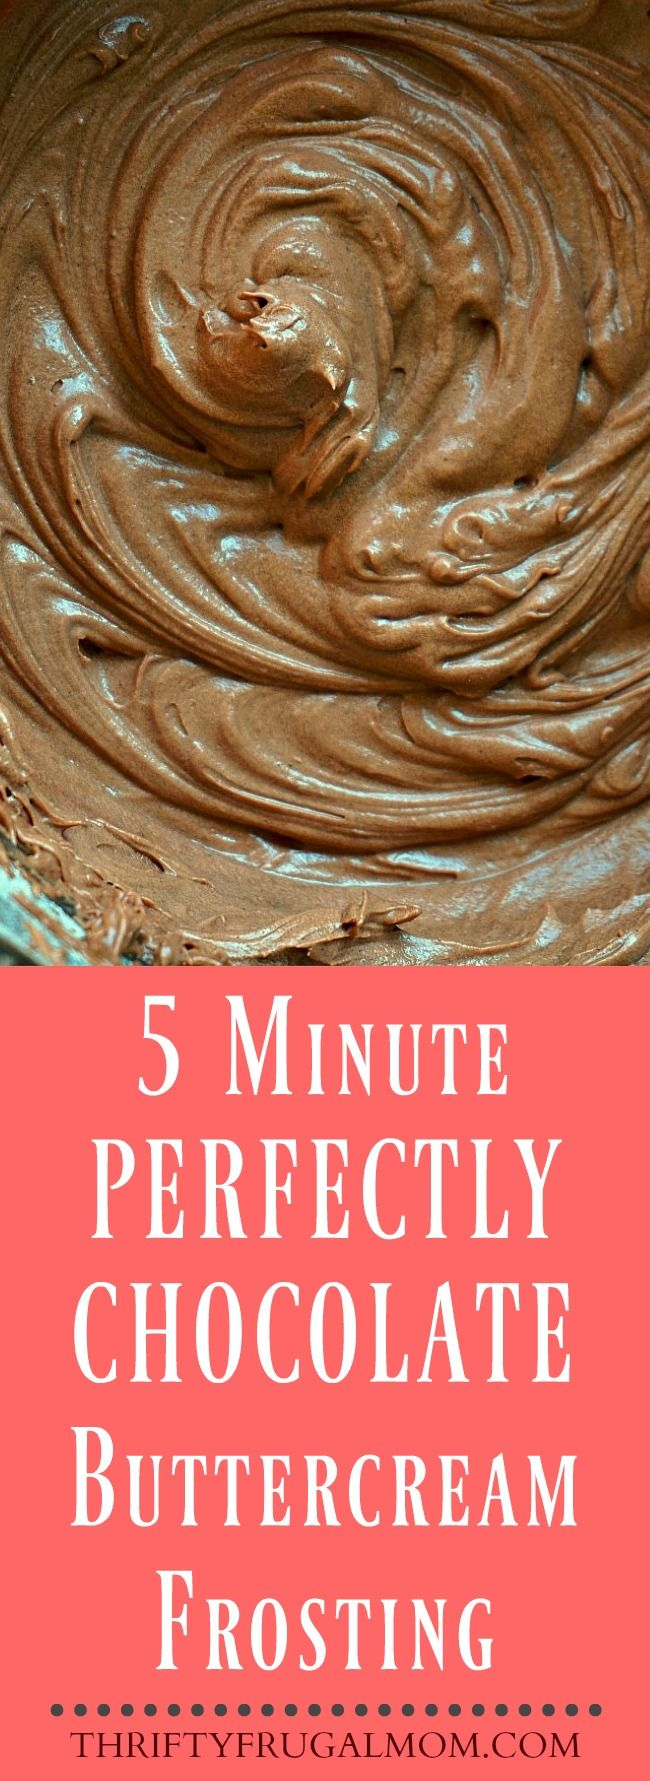 This easy chocolate buttercream frosting recipe is the best! It takes just 5 minutes to make and is the perfect amount of rich chocolate flavor.